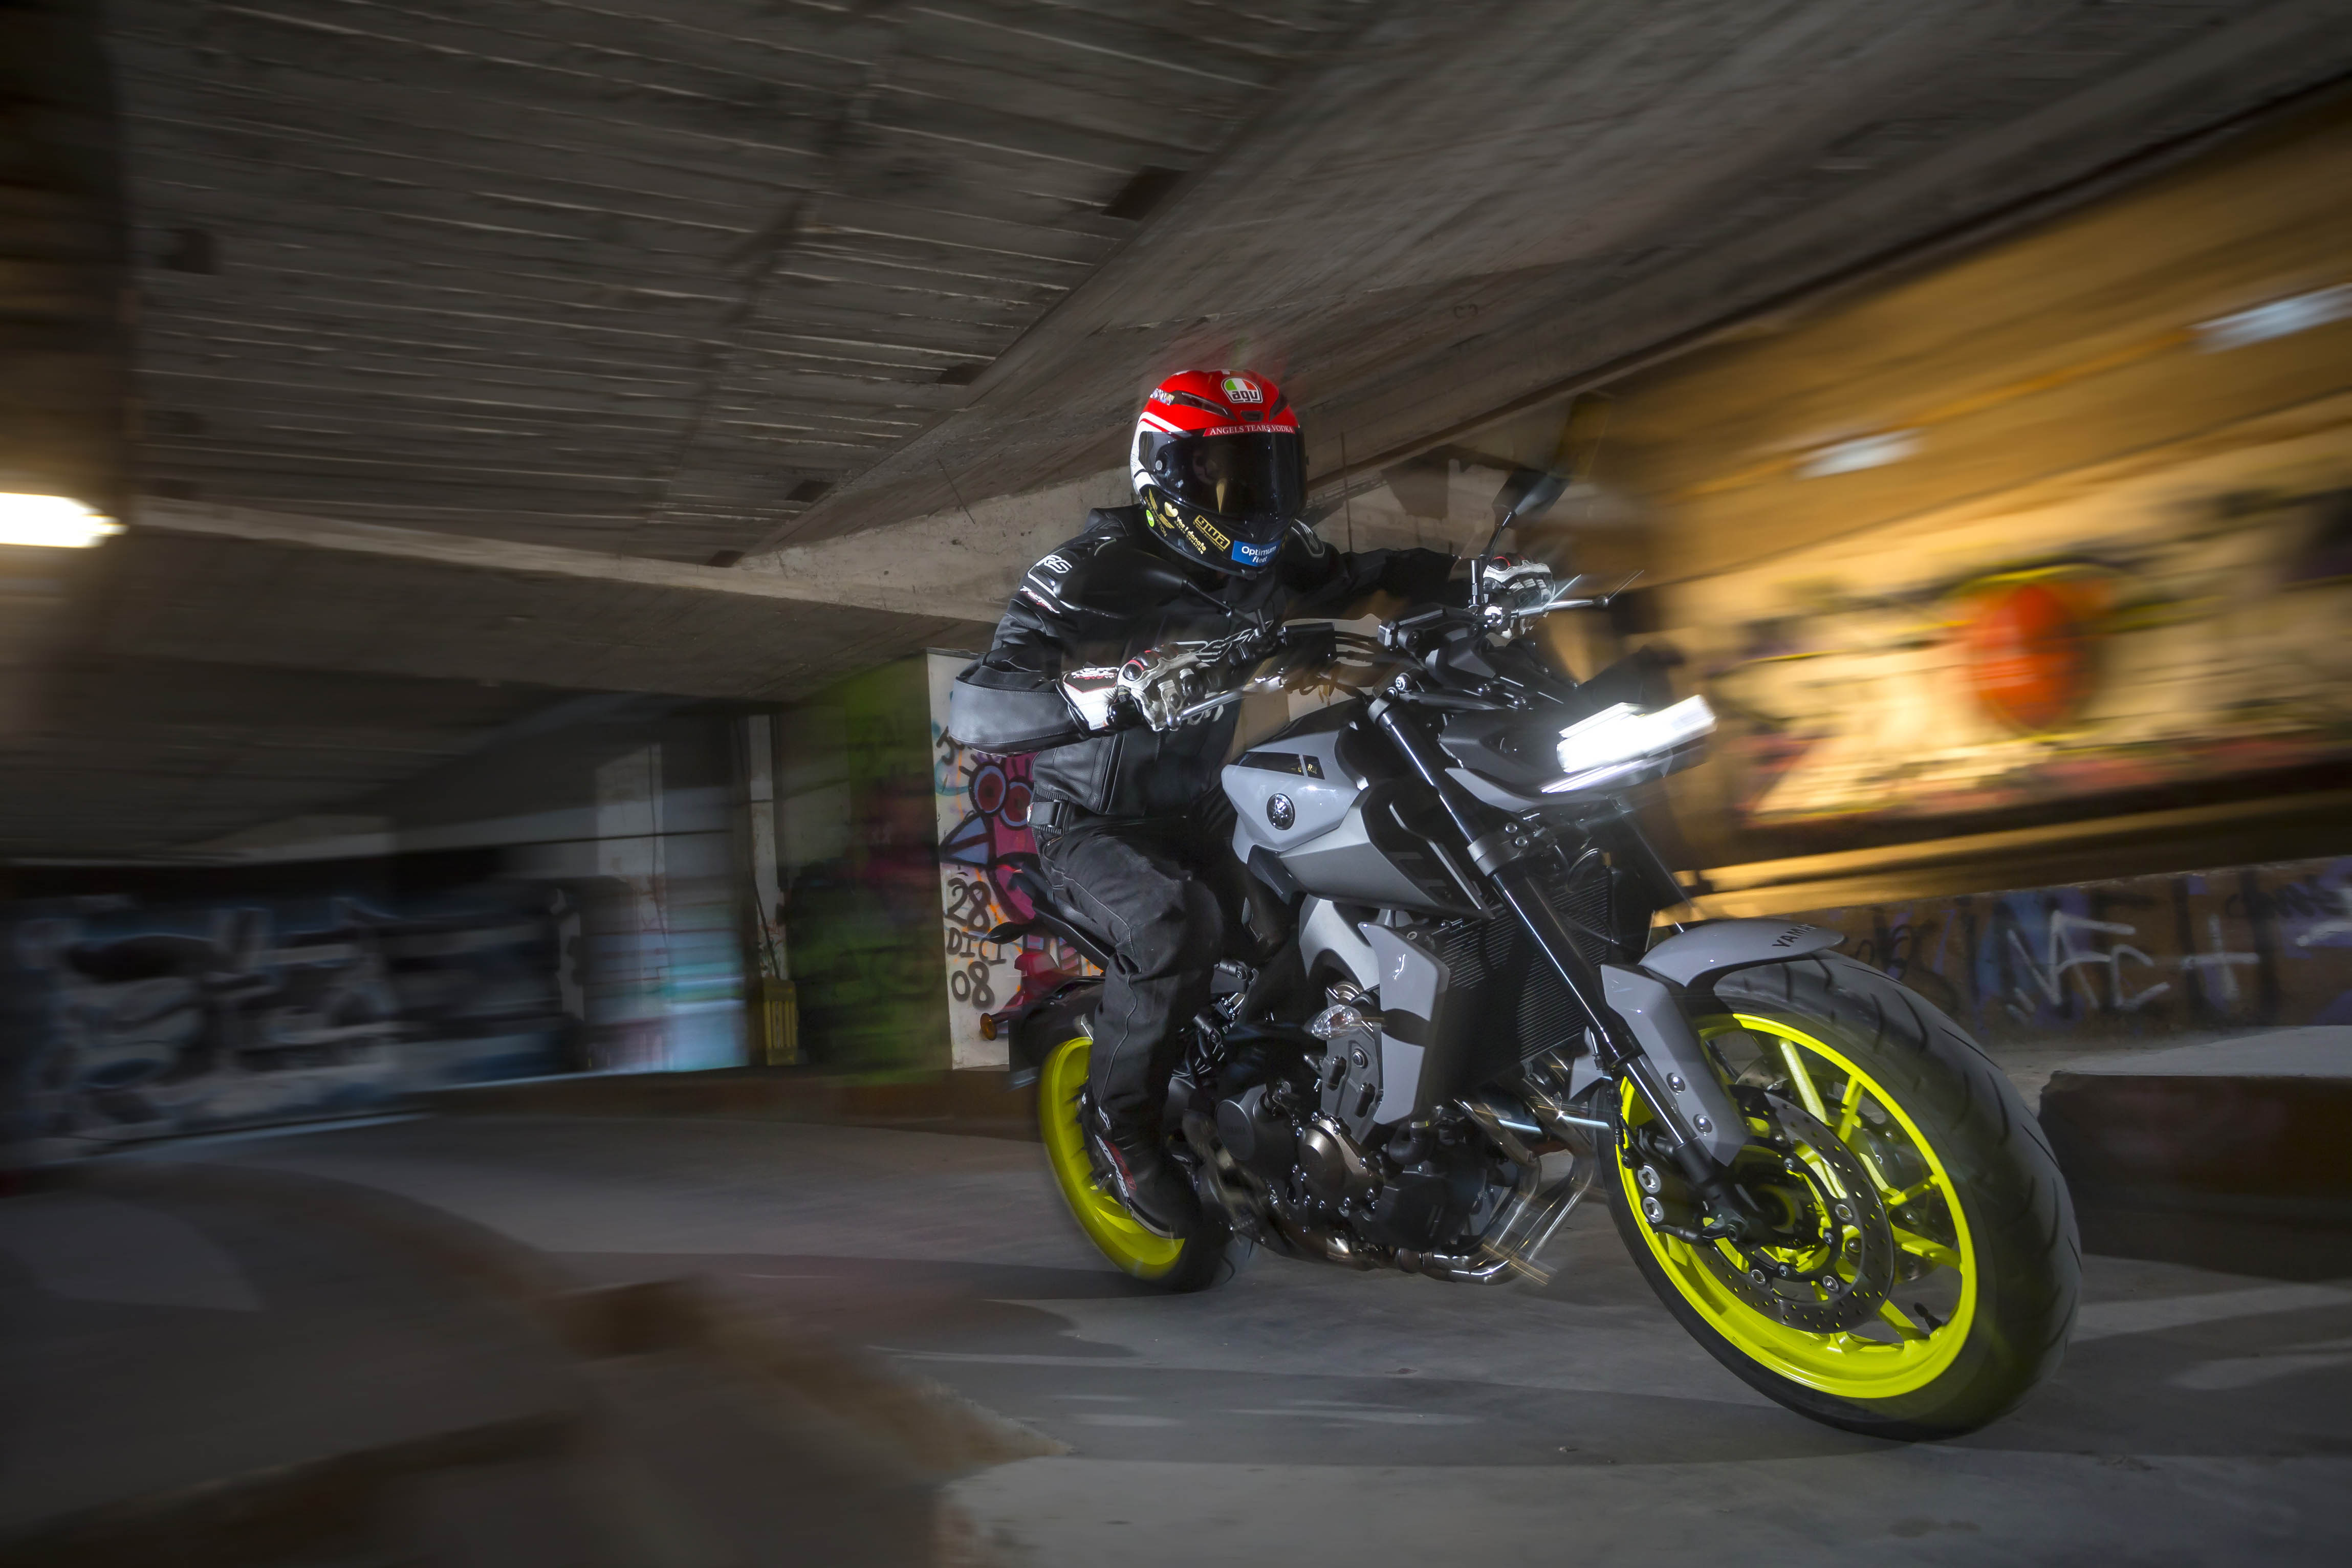 yamaha_mt09_2016_mall_1302